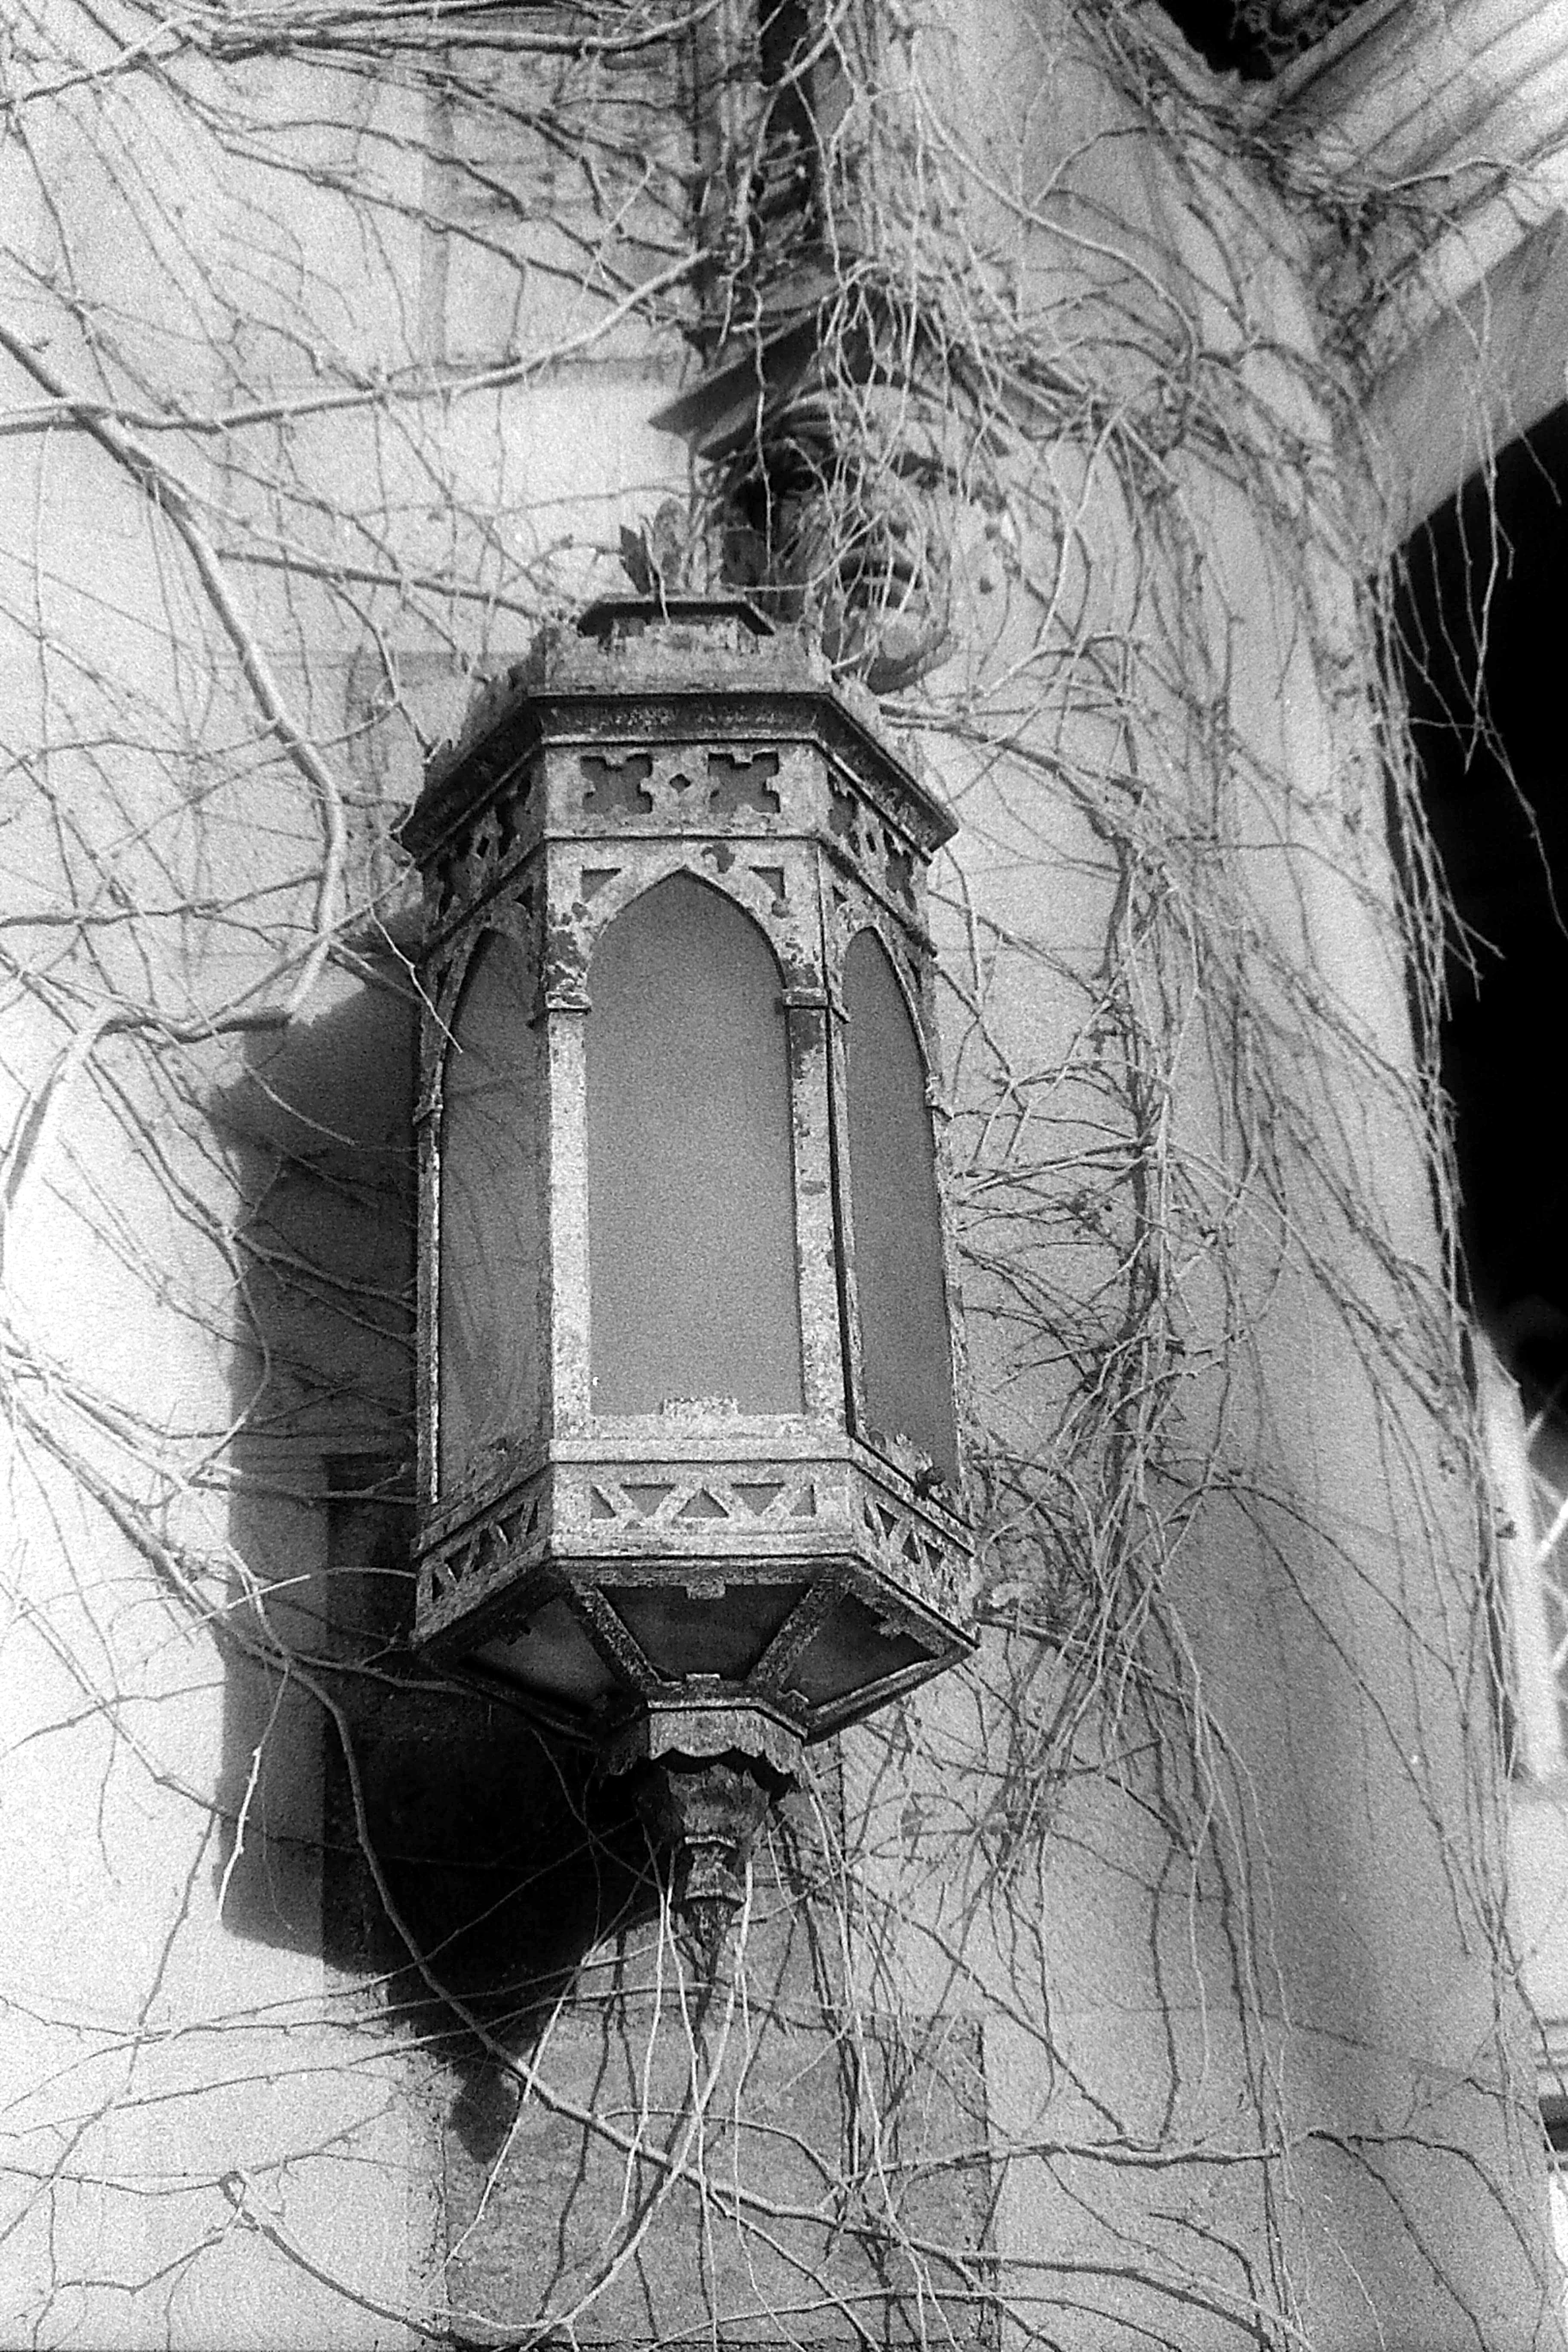 Law Library Sconce, 1978 image